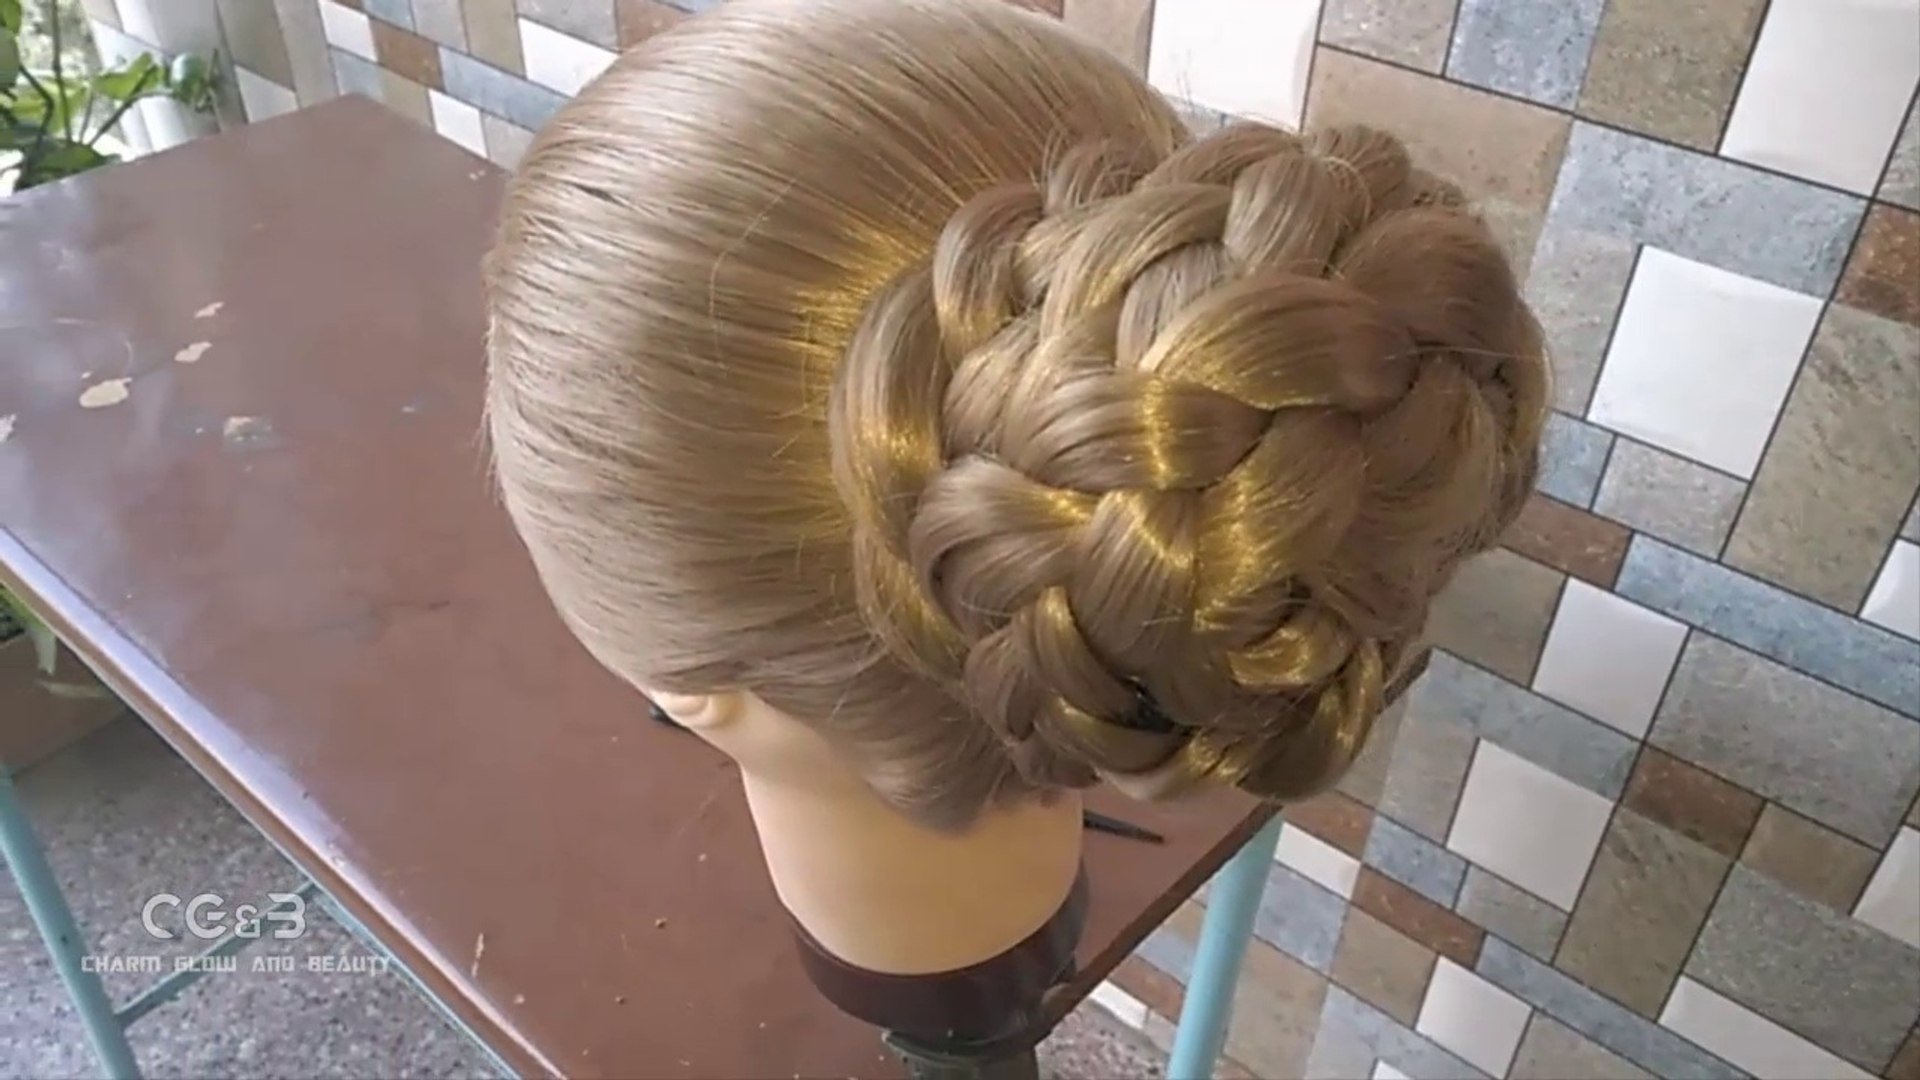 try this jalebi juda hairstyle, best look on saree. look beautiful in party. learn step by step 2018 best stylish juda making